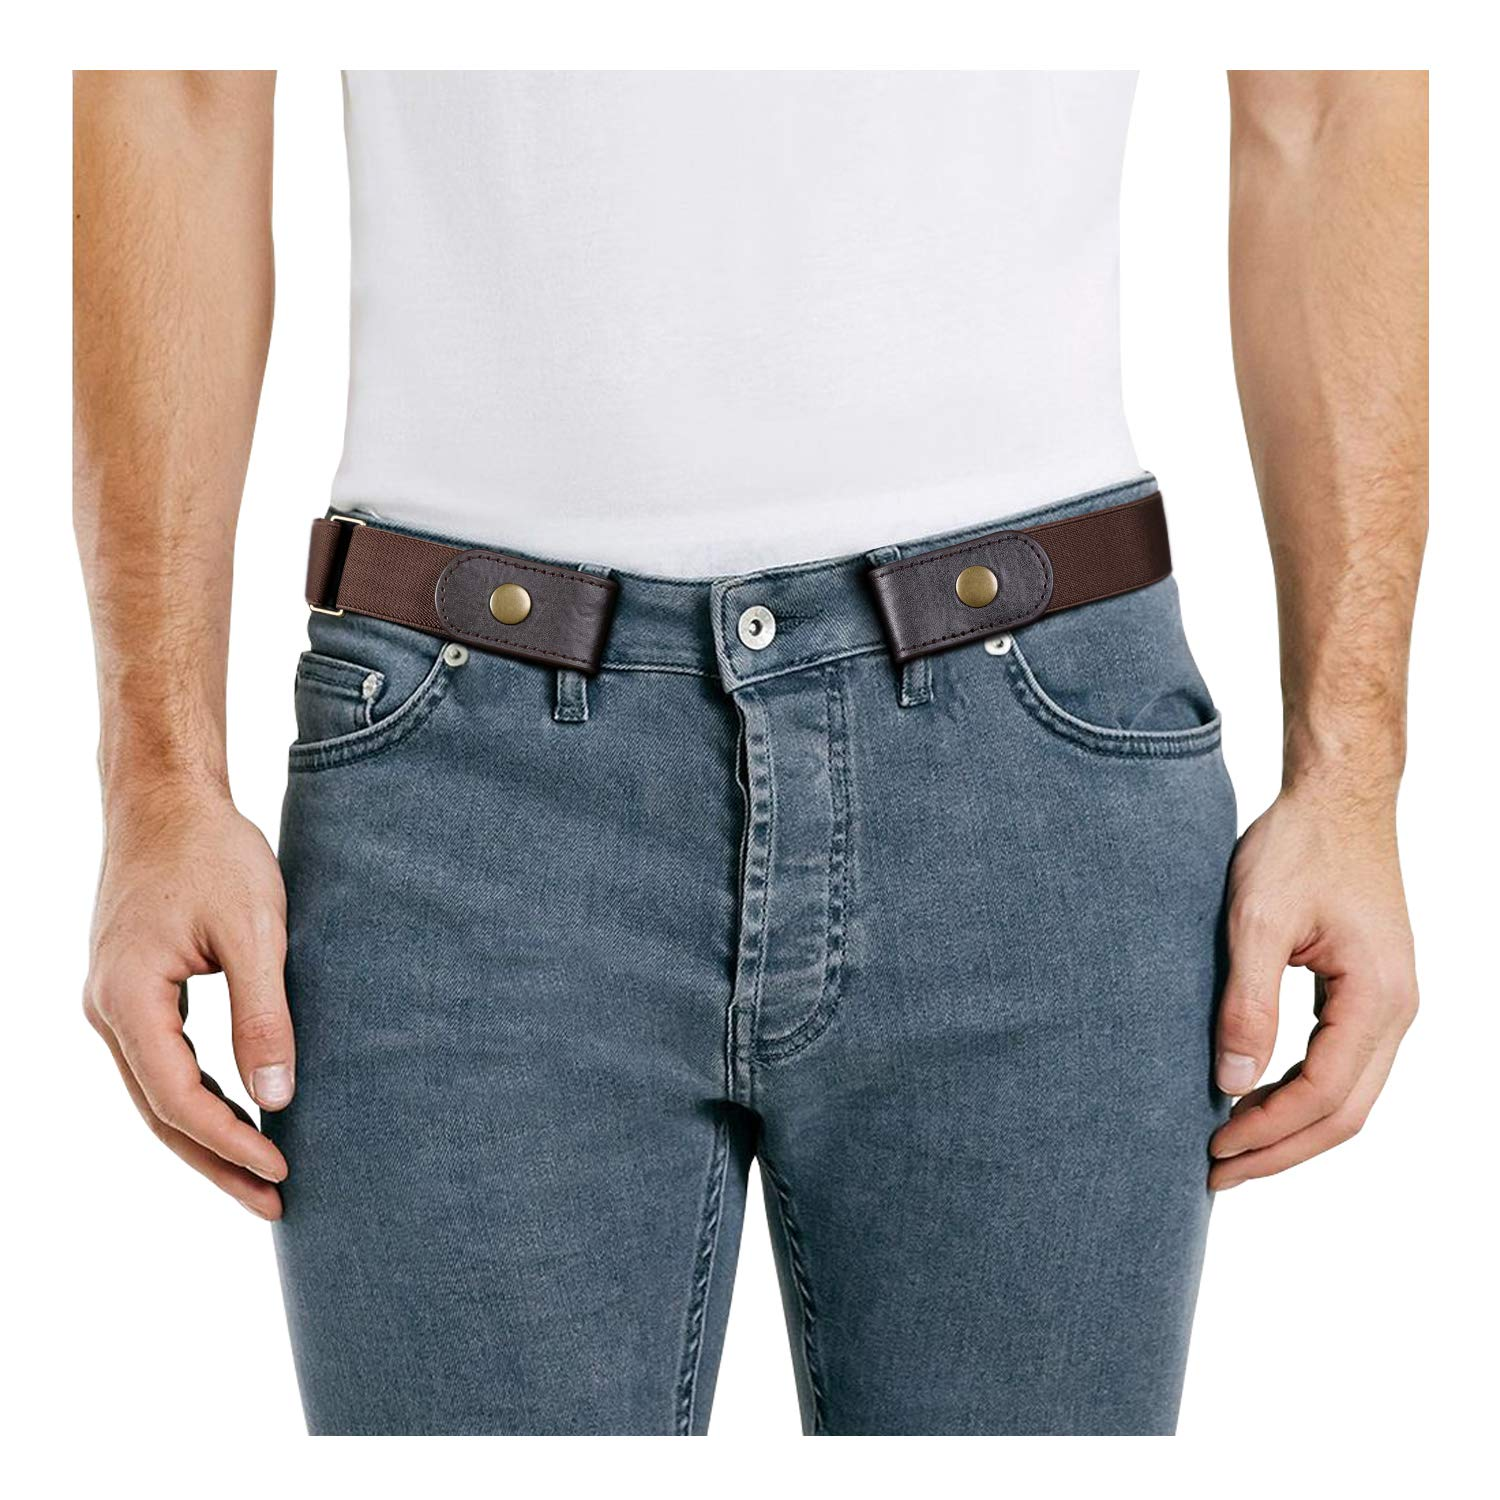 Really like this belt